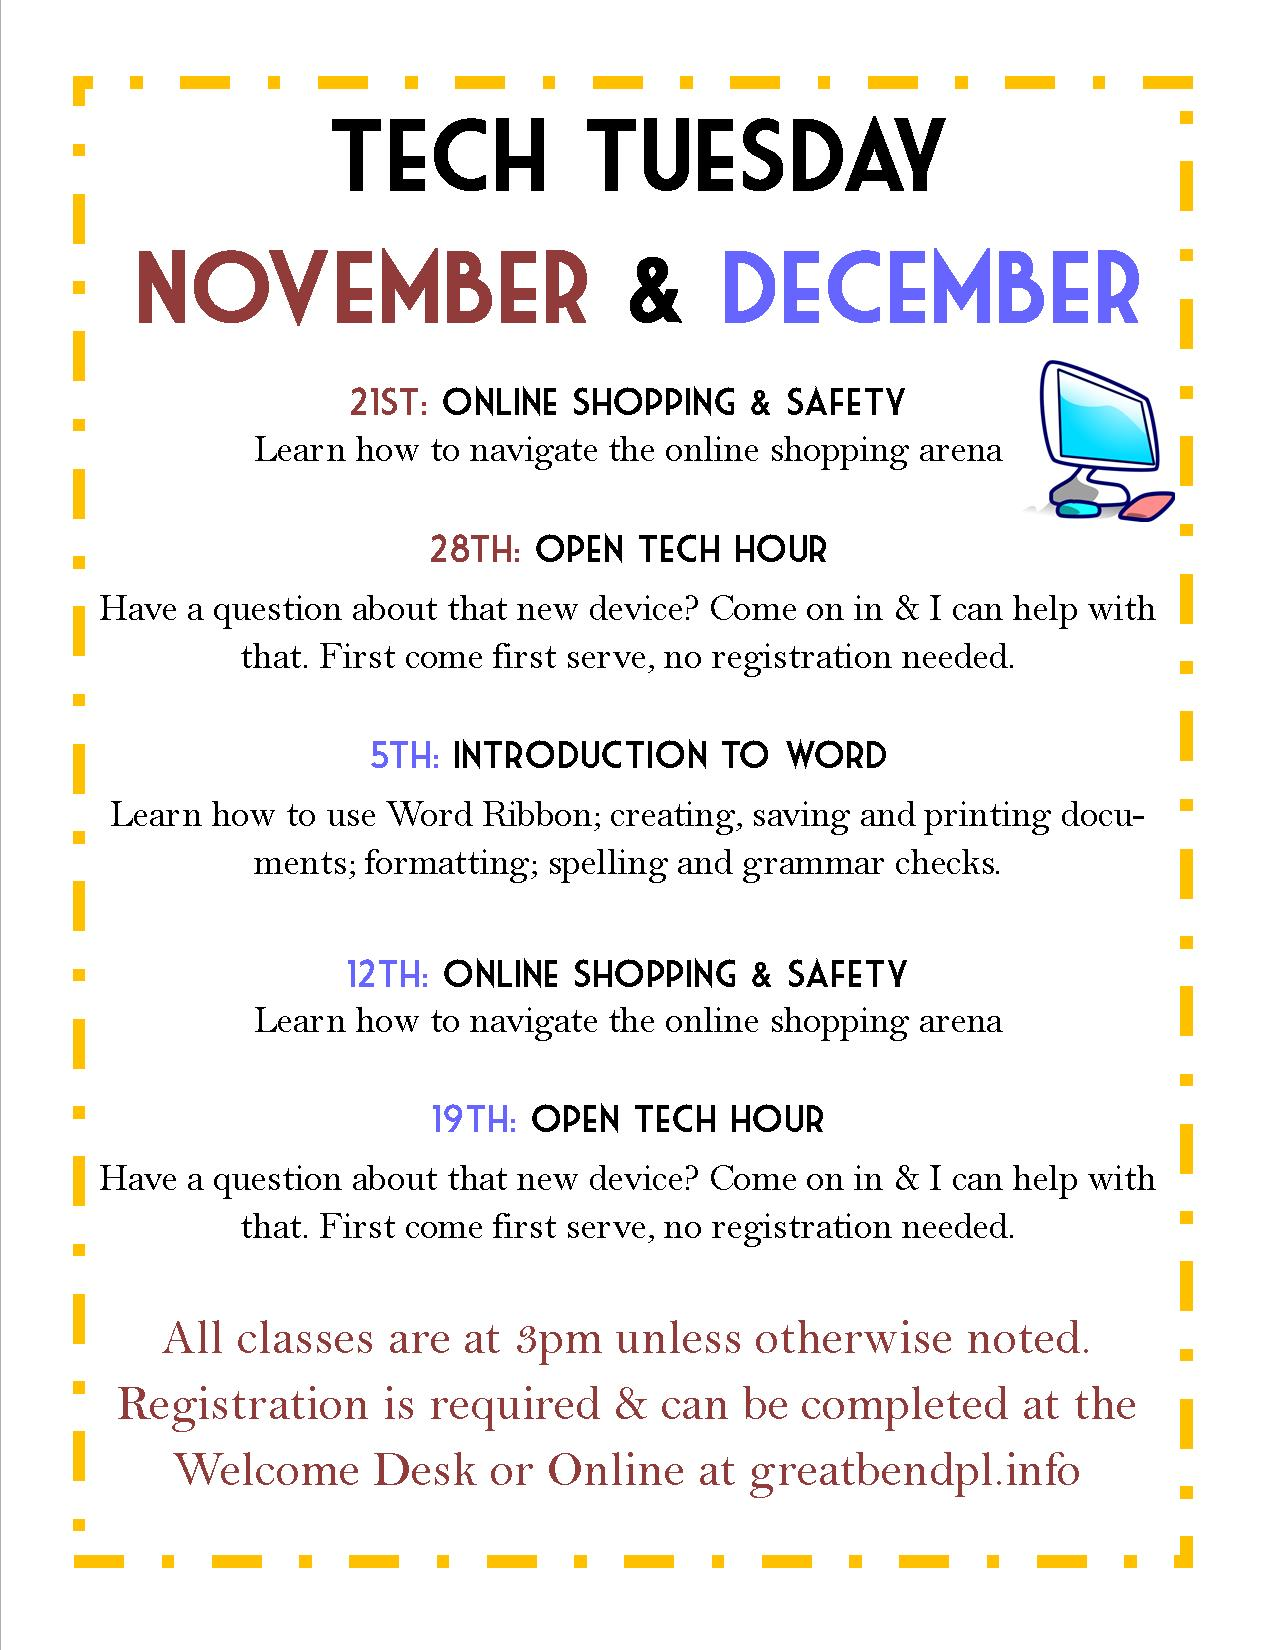 Tech Tuesday- Online Shopping 101